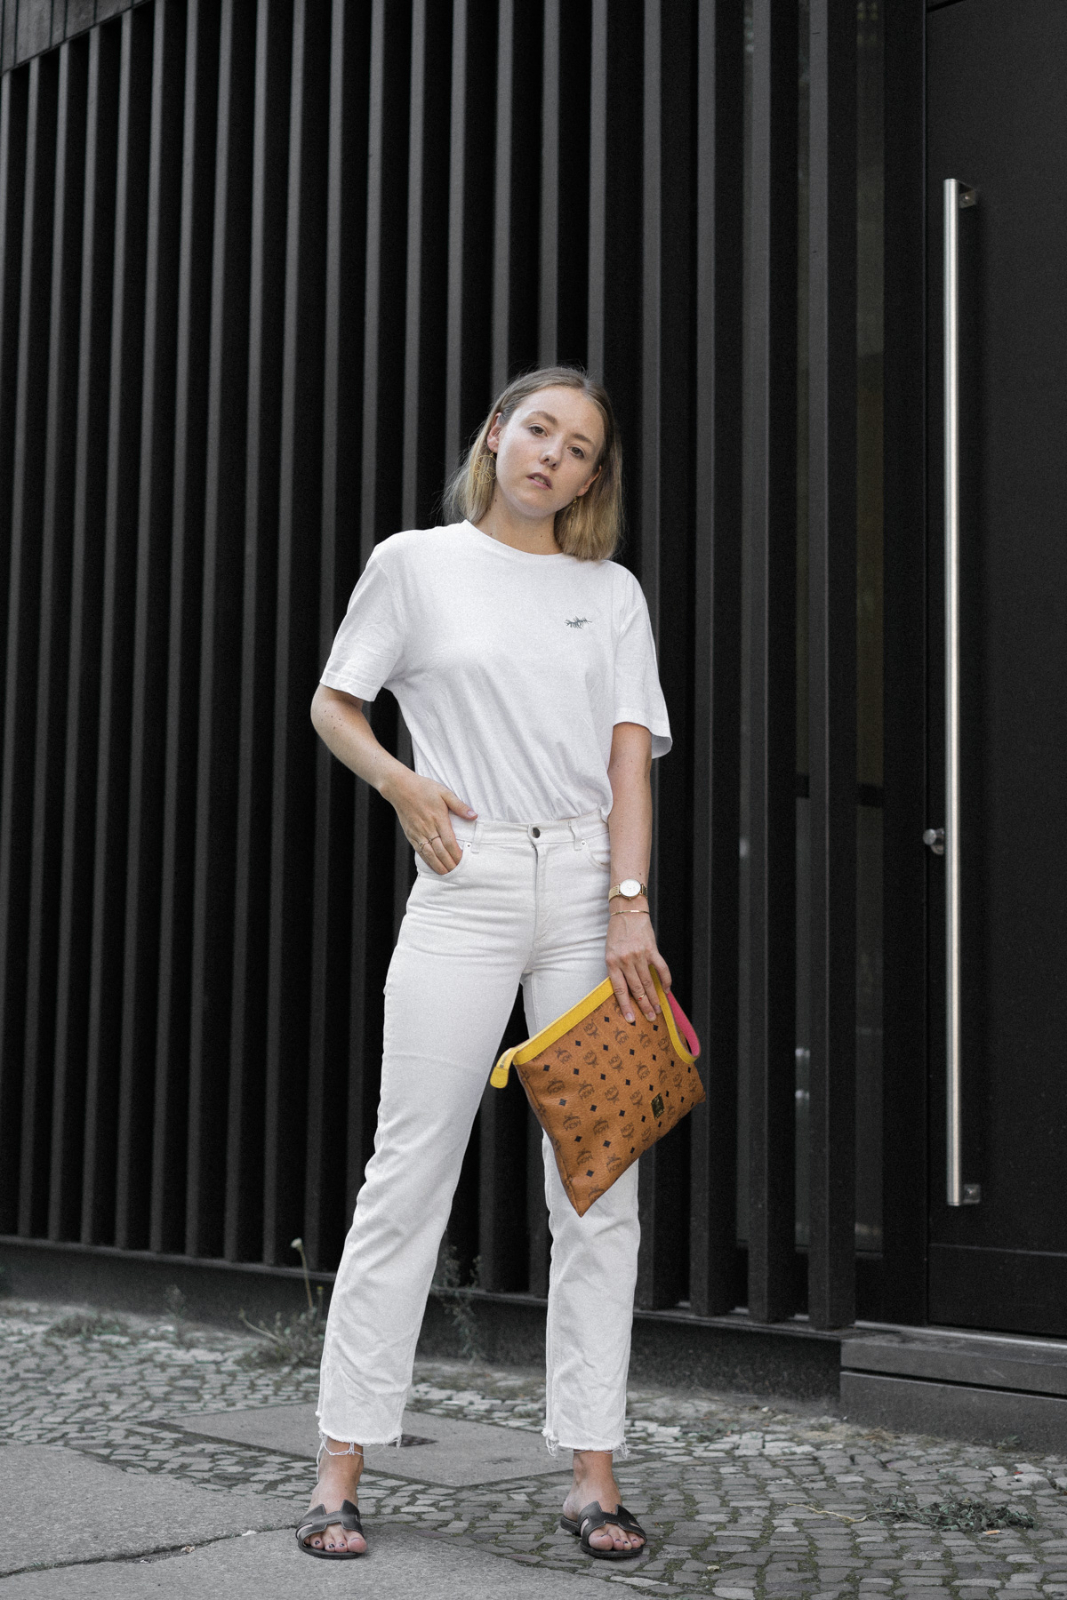 All white_TheLimitsofControl_Fashionblogger_Berlin_Deutschland_Germany